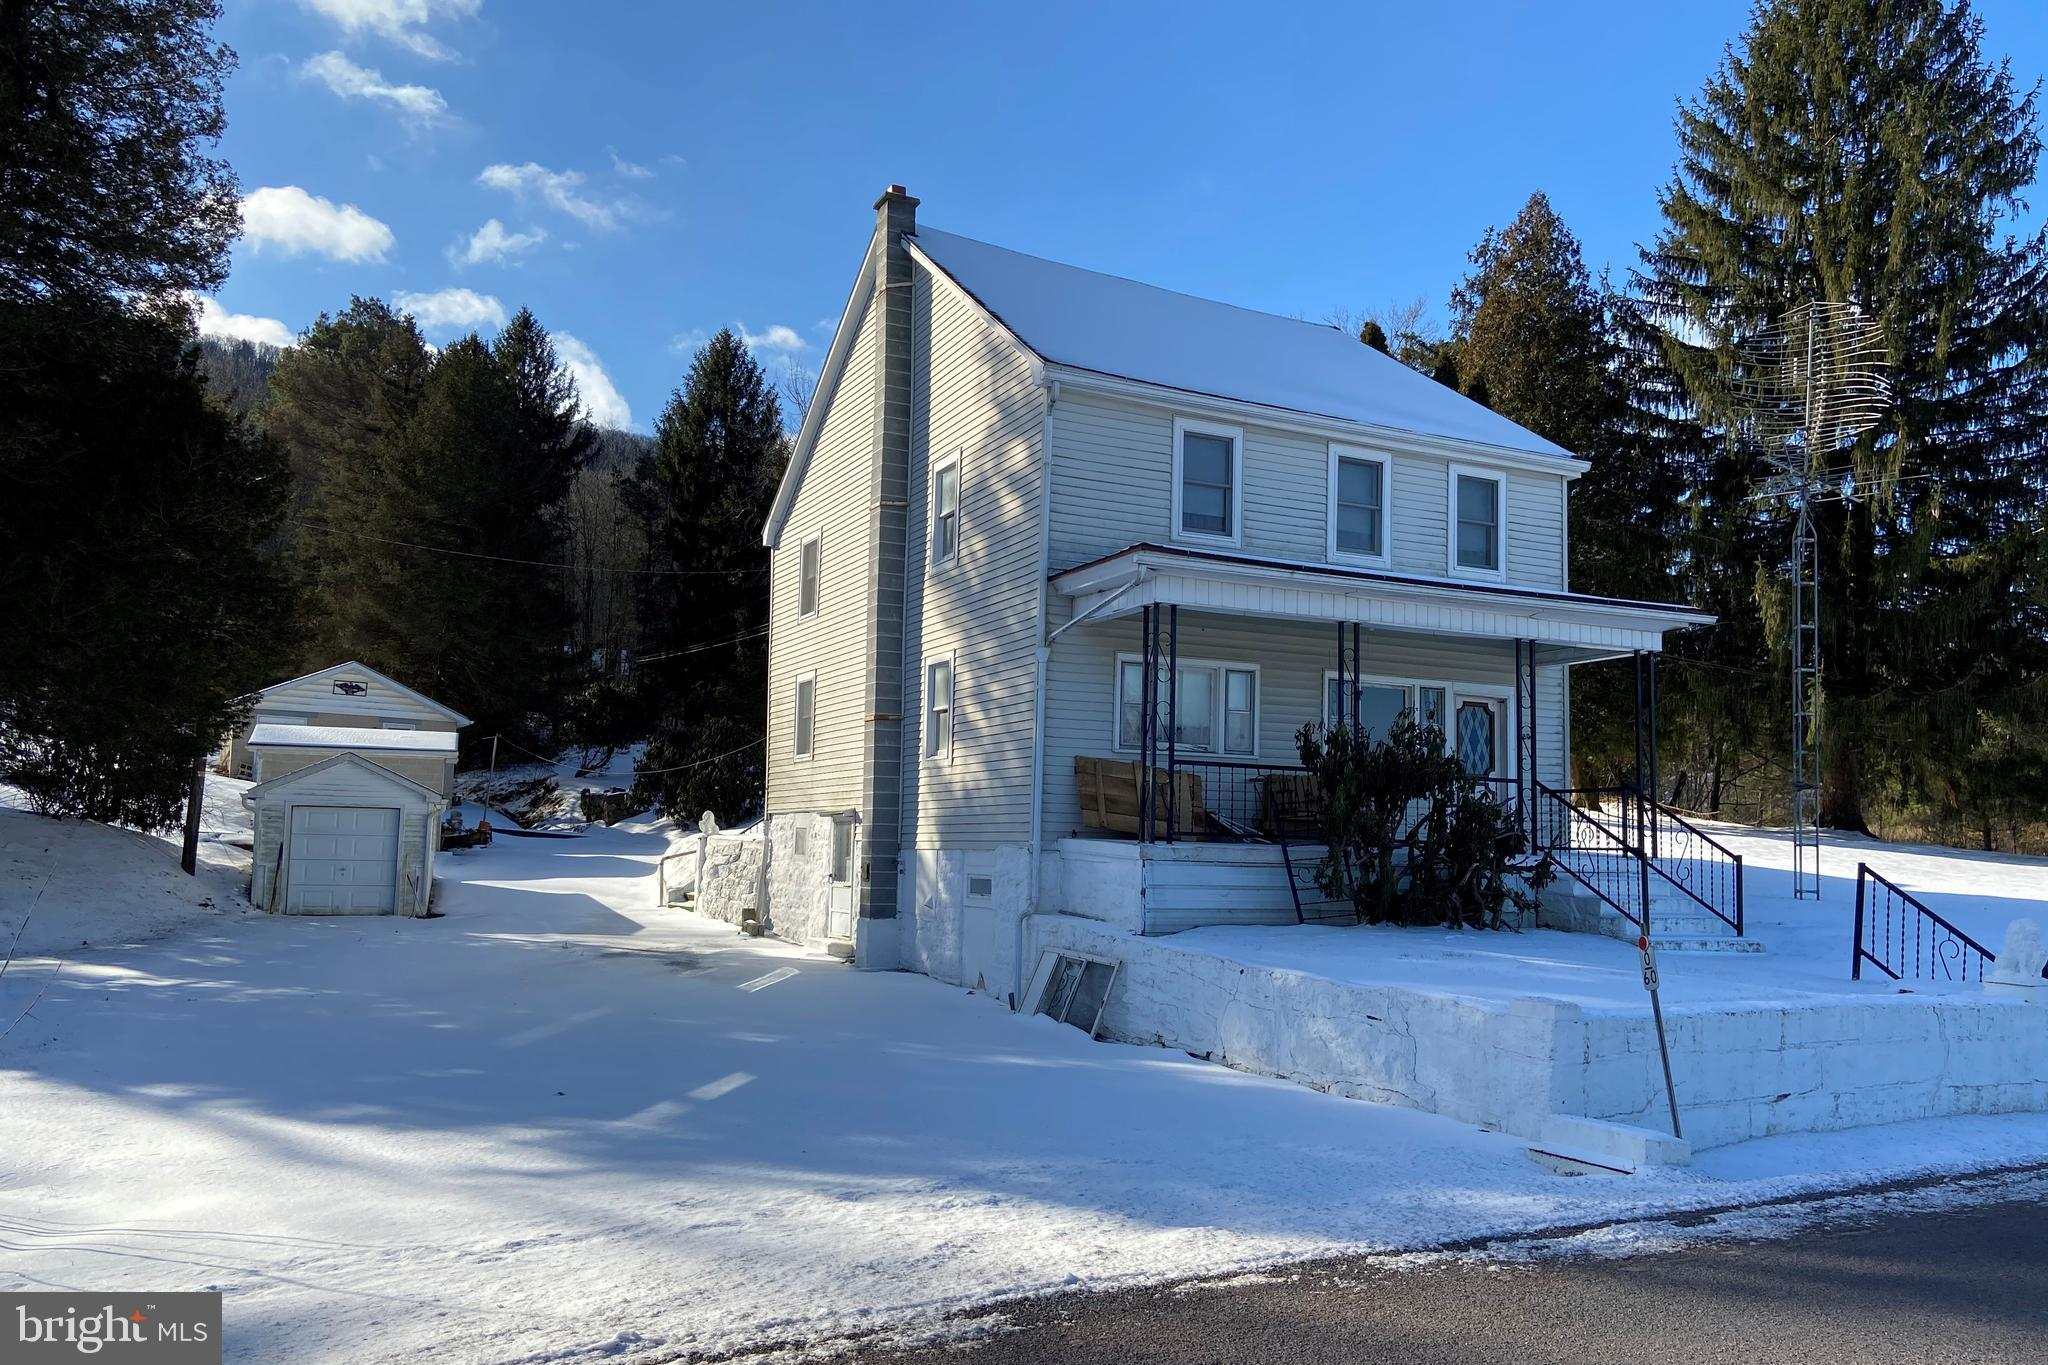 480 AIRPORT ROAD, ASHLAND, PA 17921